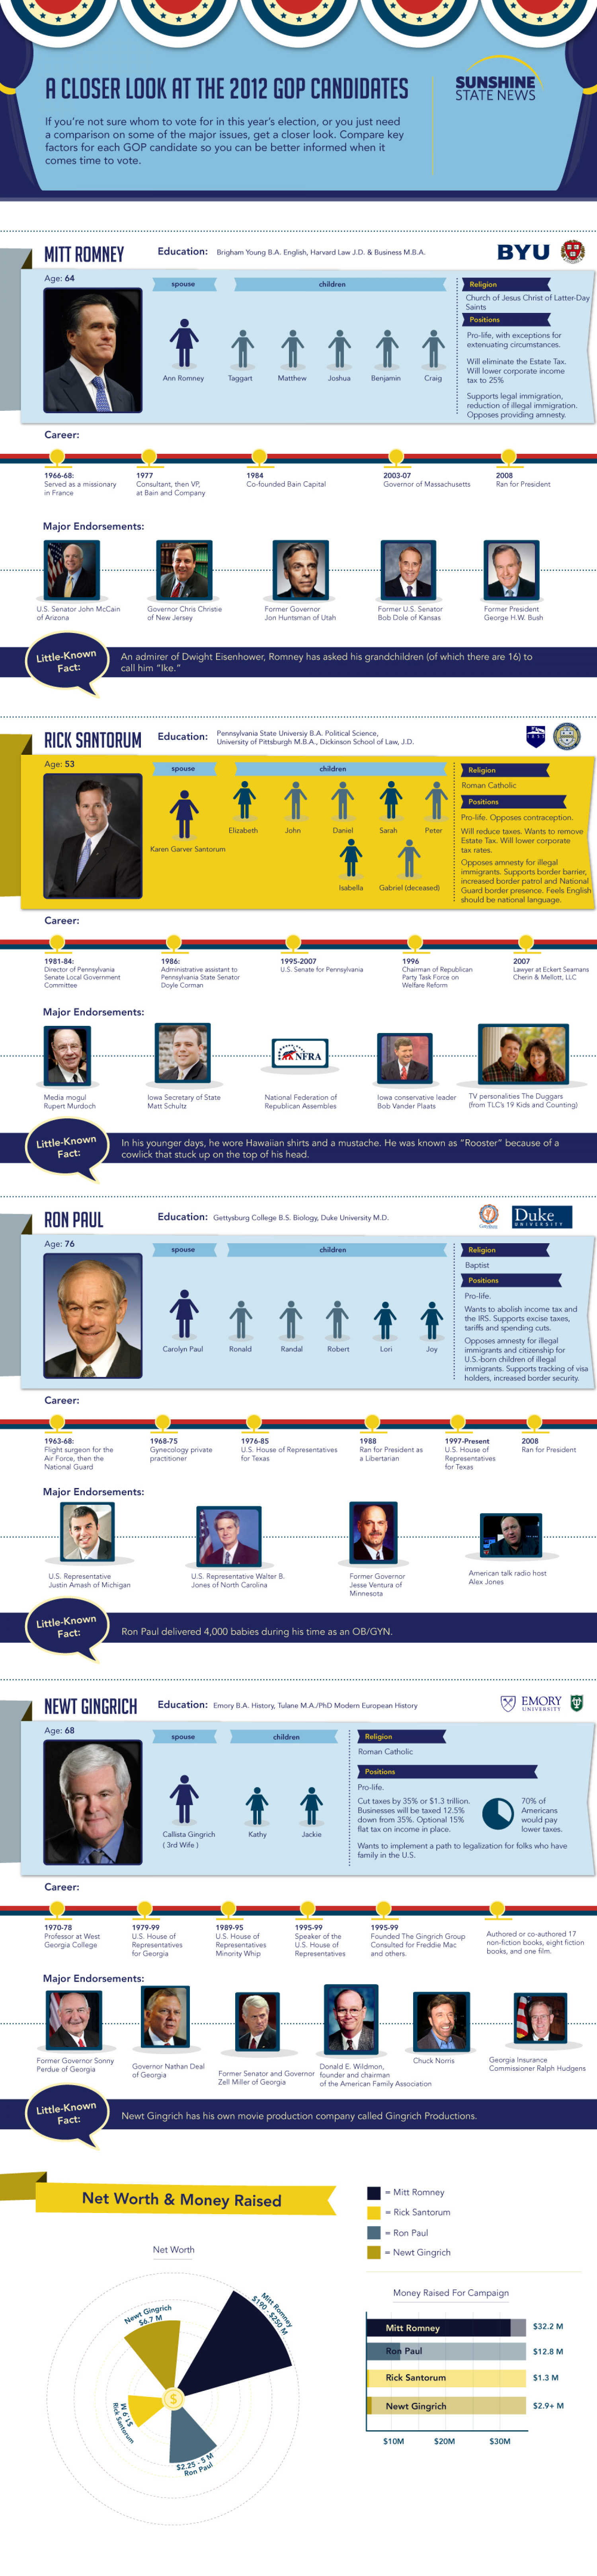 A Closer Look at the GOP's 2012 Presidential Primary Candidates Infographic